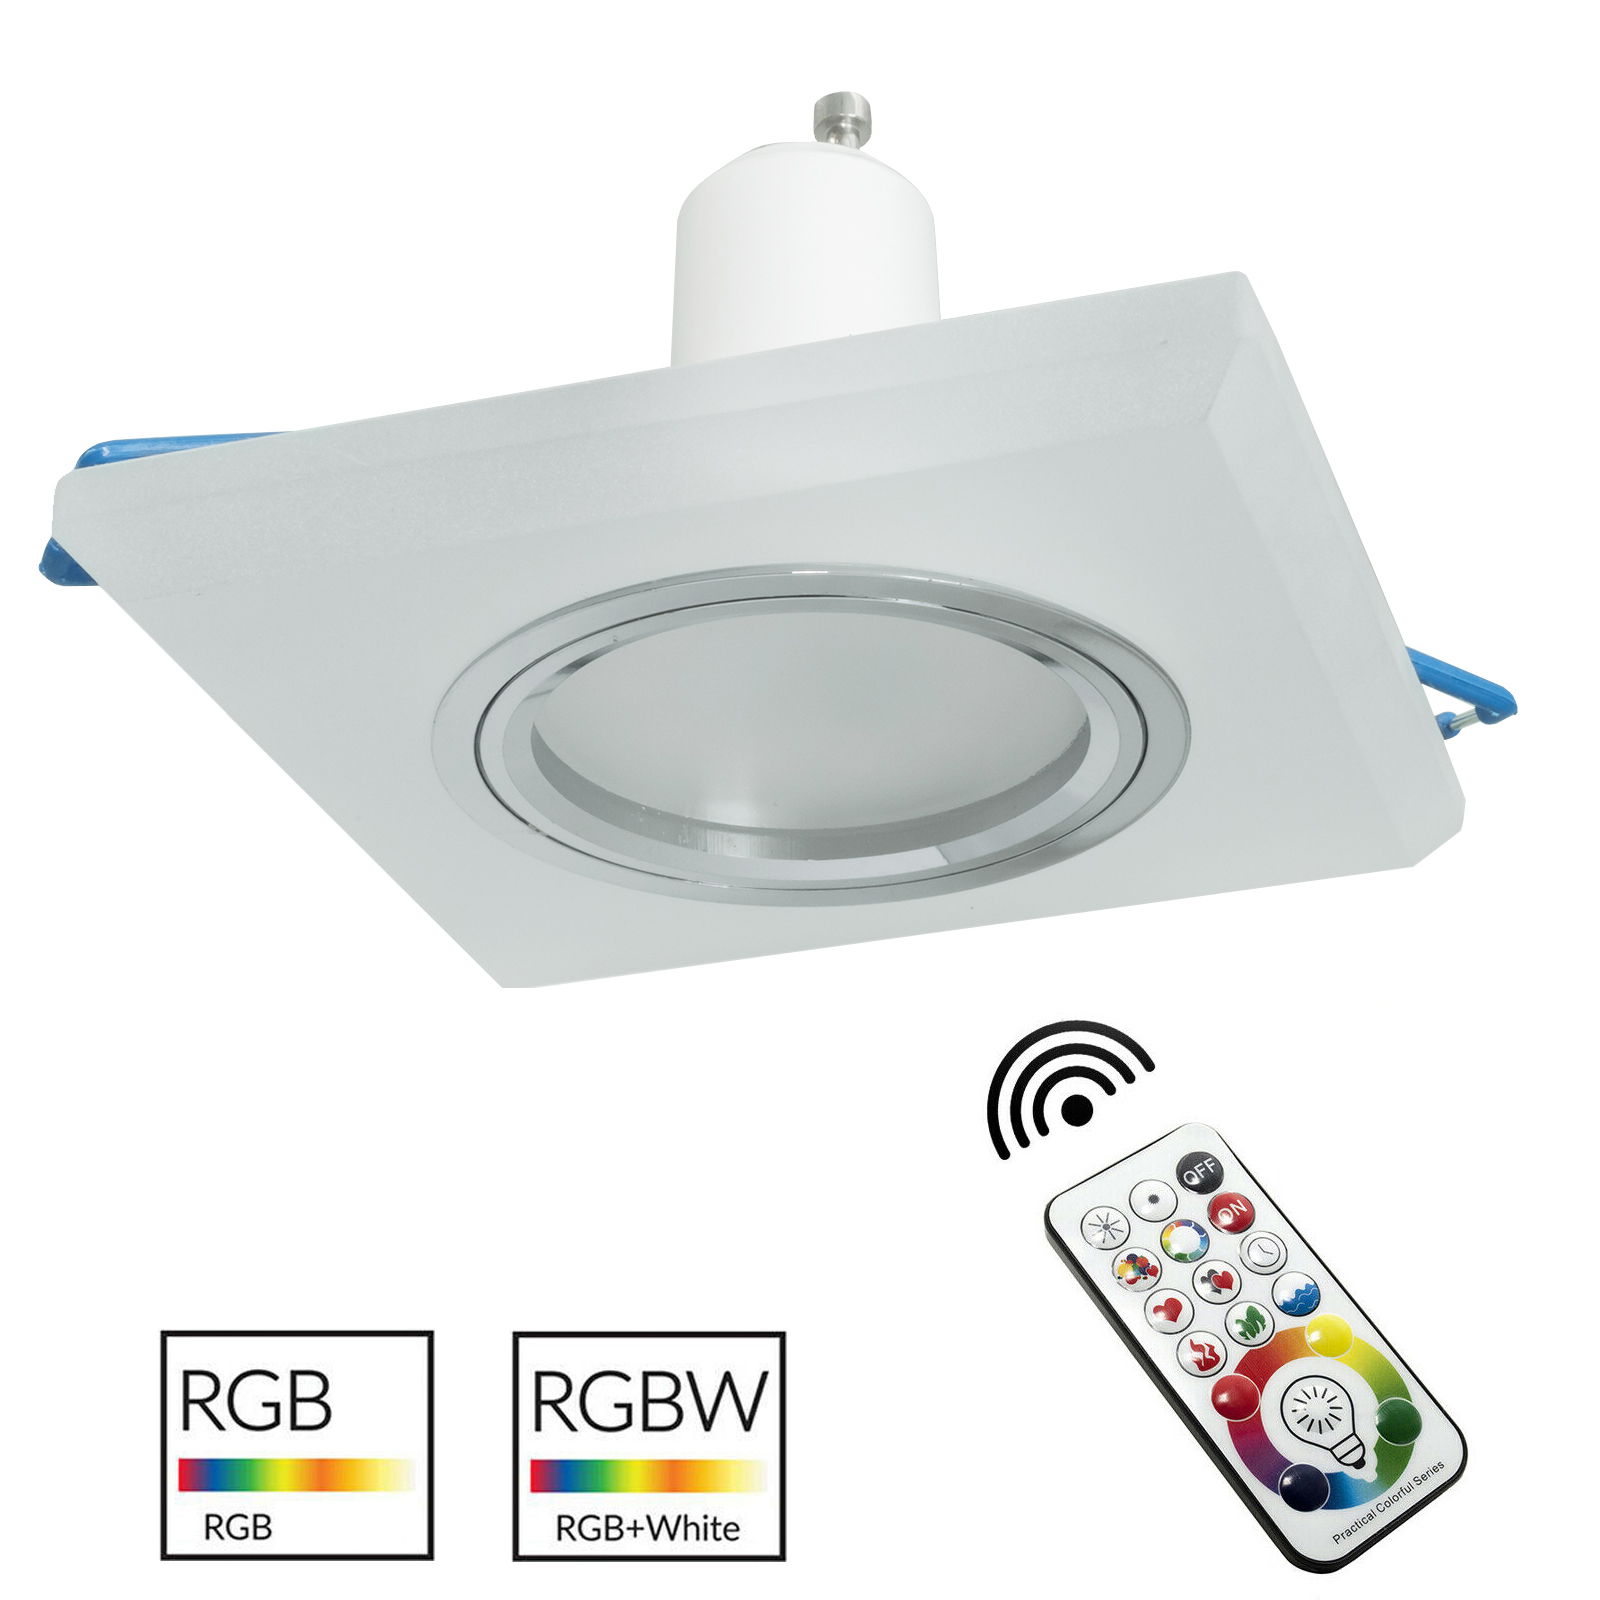 LED spot light frosted glass flush-square-6cm square colored light RGB GU10